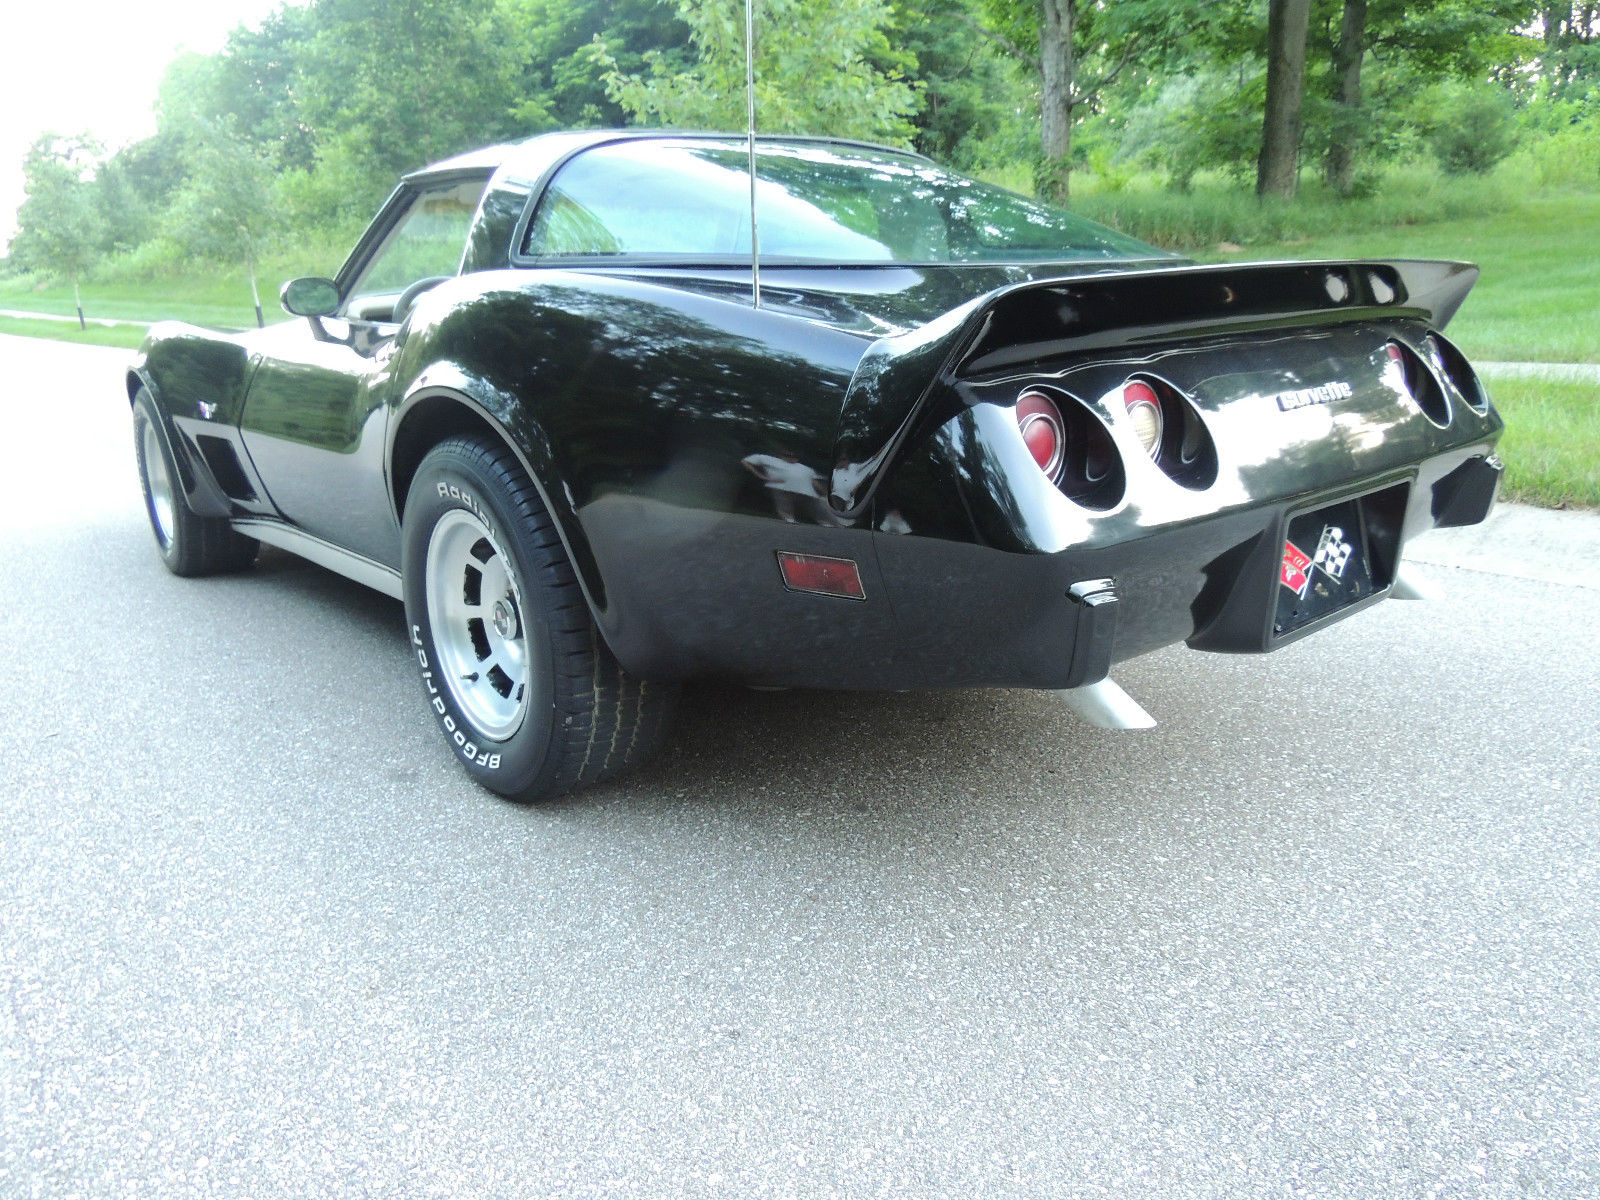 L Corvette Beautiful Black Glass Tops D Rare Oyster Interior Very Nice on 1979 Corvette Air Conditioning System